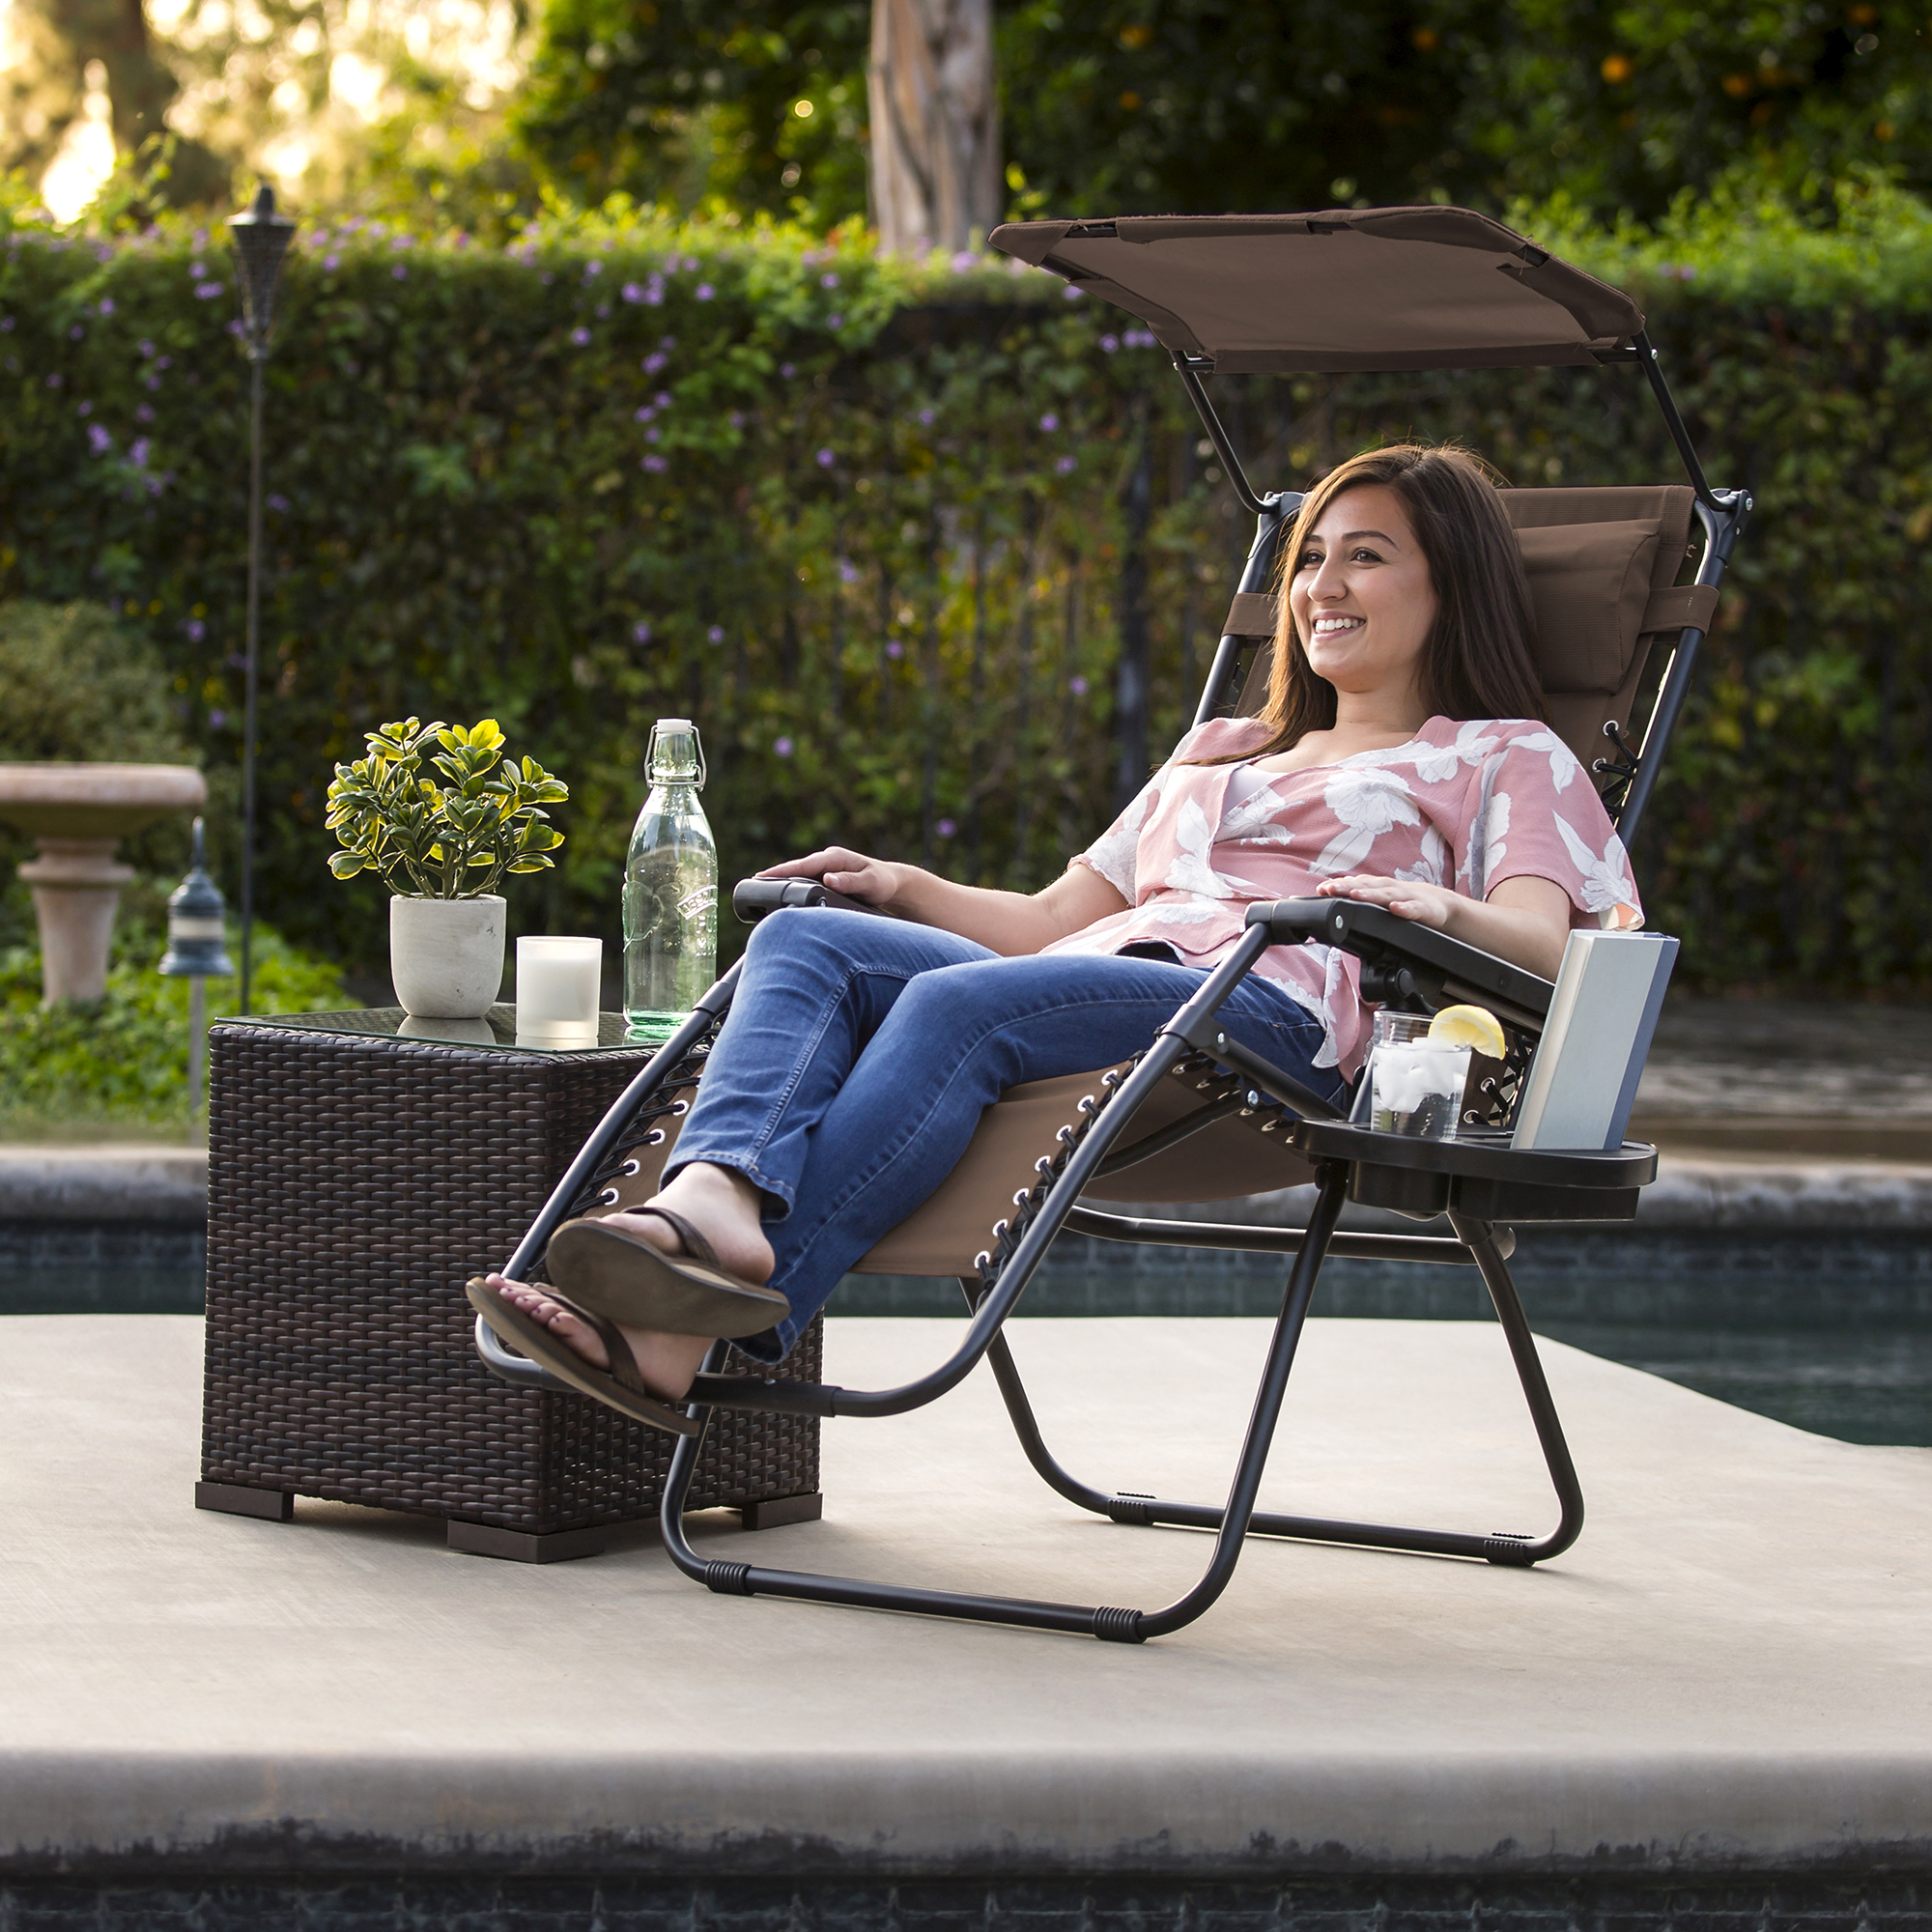 BCP-Folding-Zero-Gravity-Recliner-Lounge-Chair-w-Canopy-Cup-Holder thumbnail 23